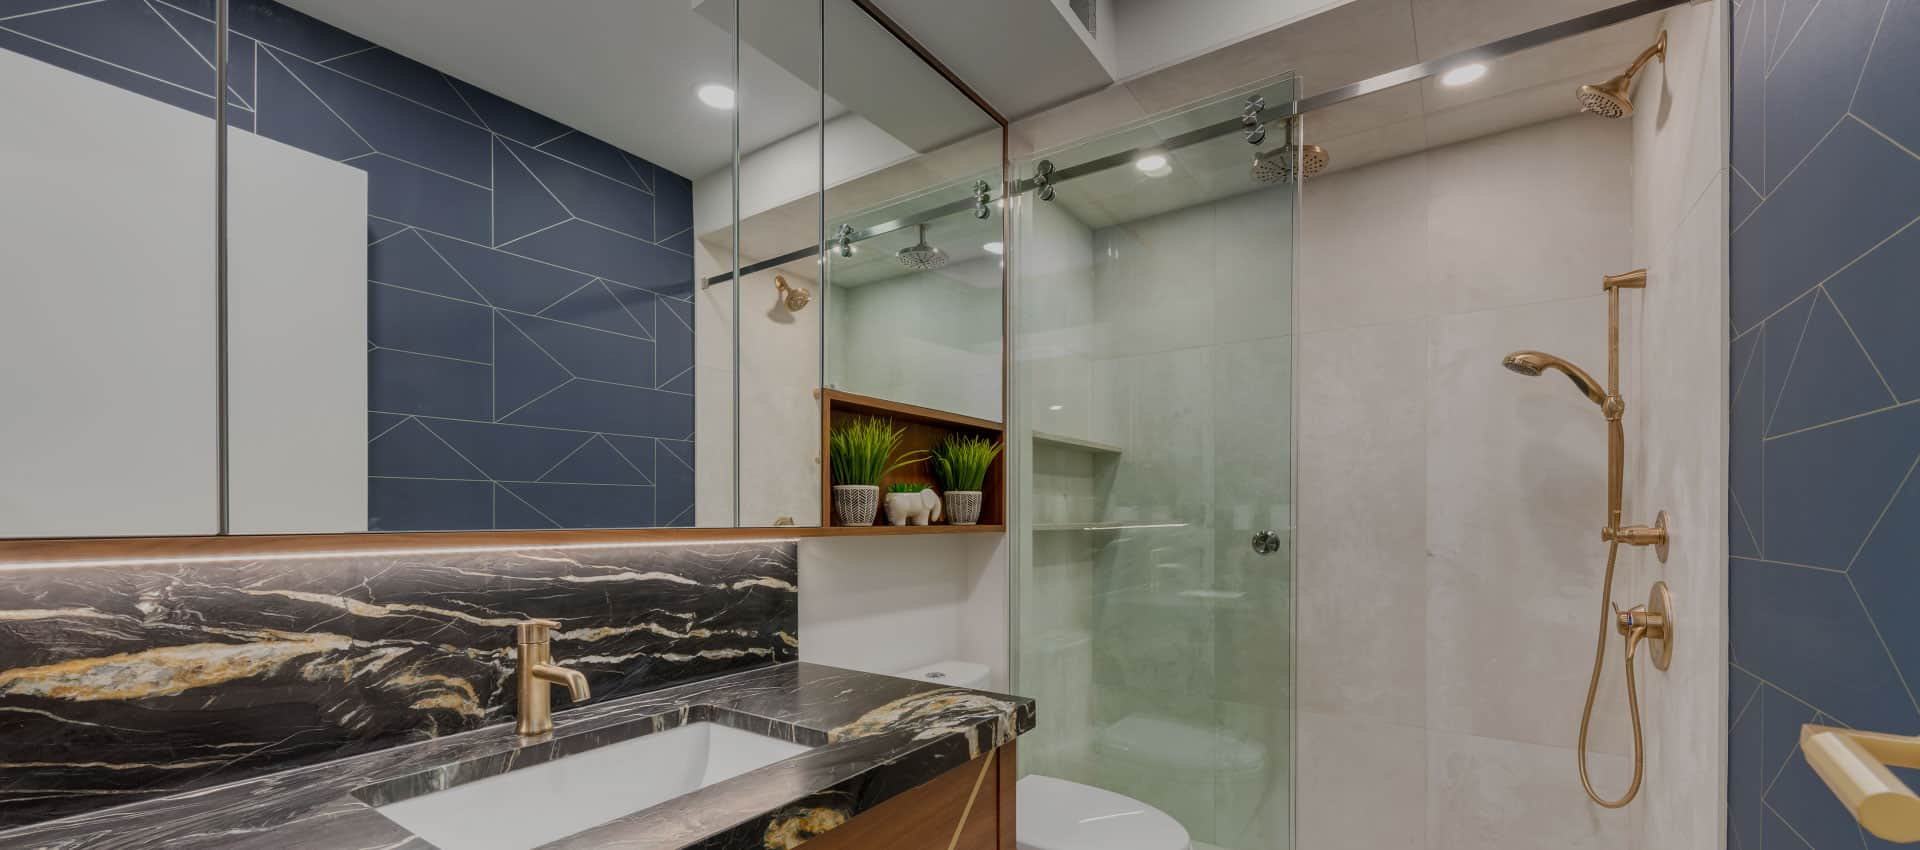 BUILDING, DESIGNING AND RENOVATING FOREVER HOMES FOR DISCERNING CLIENTS